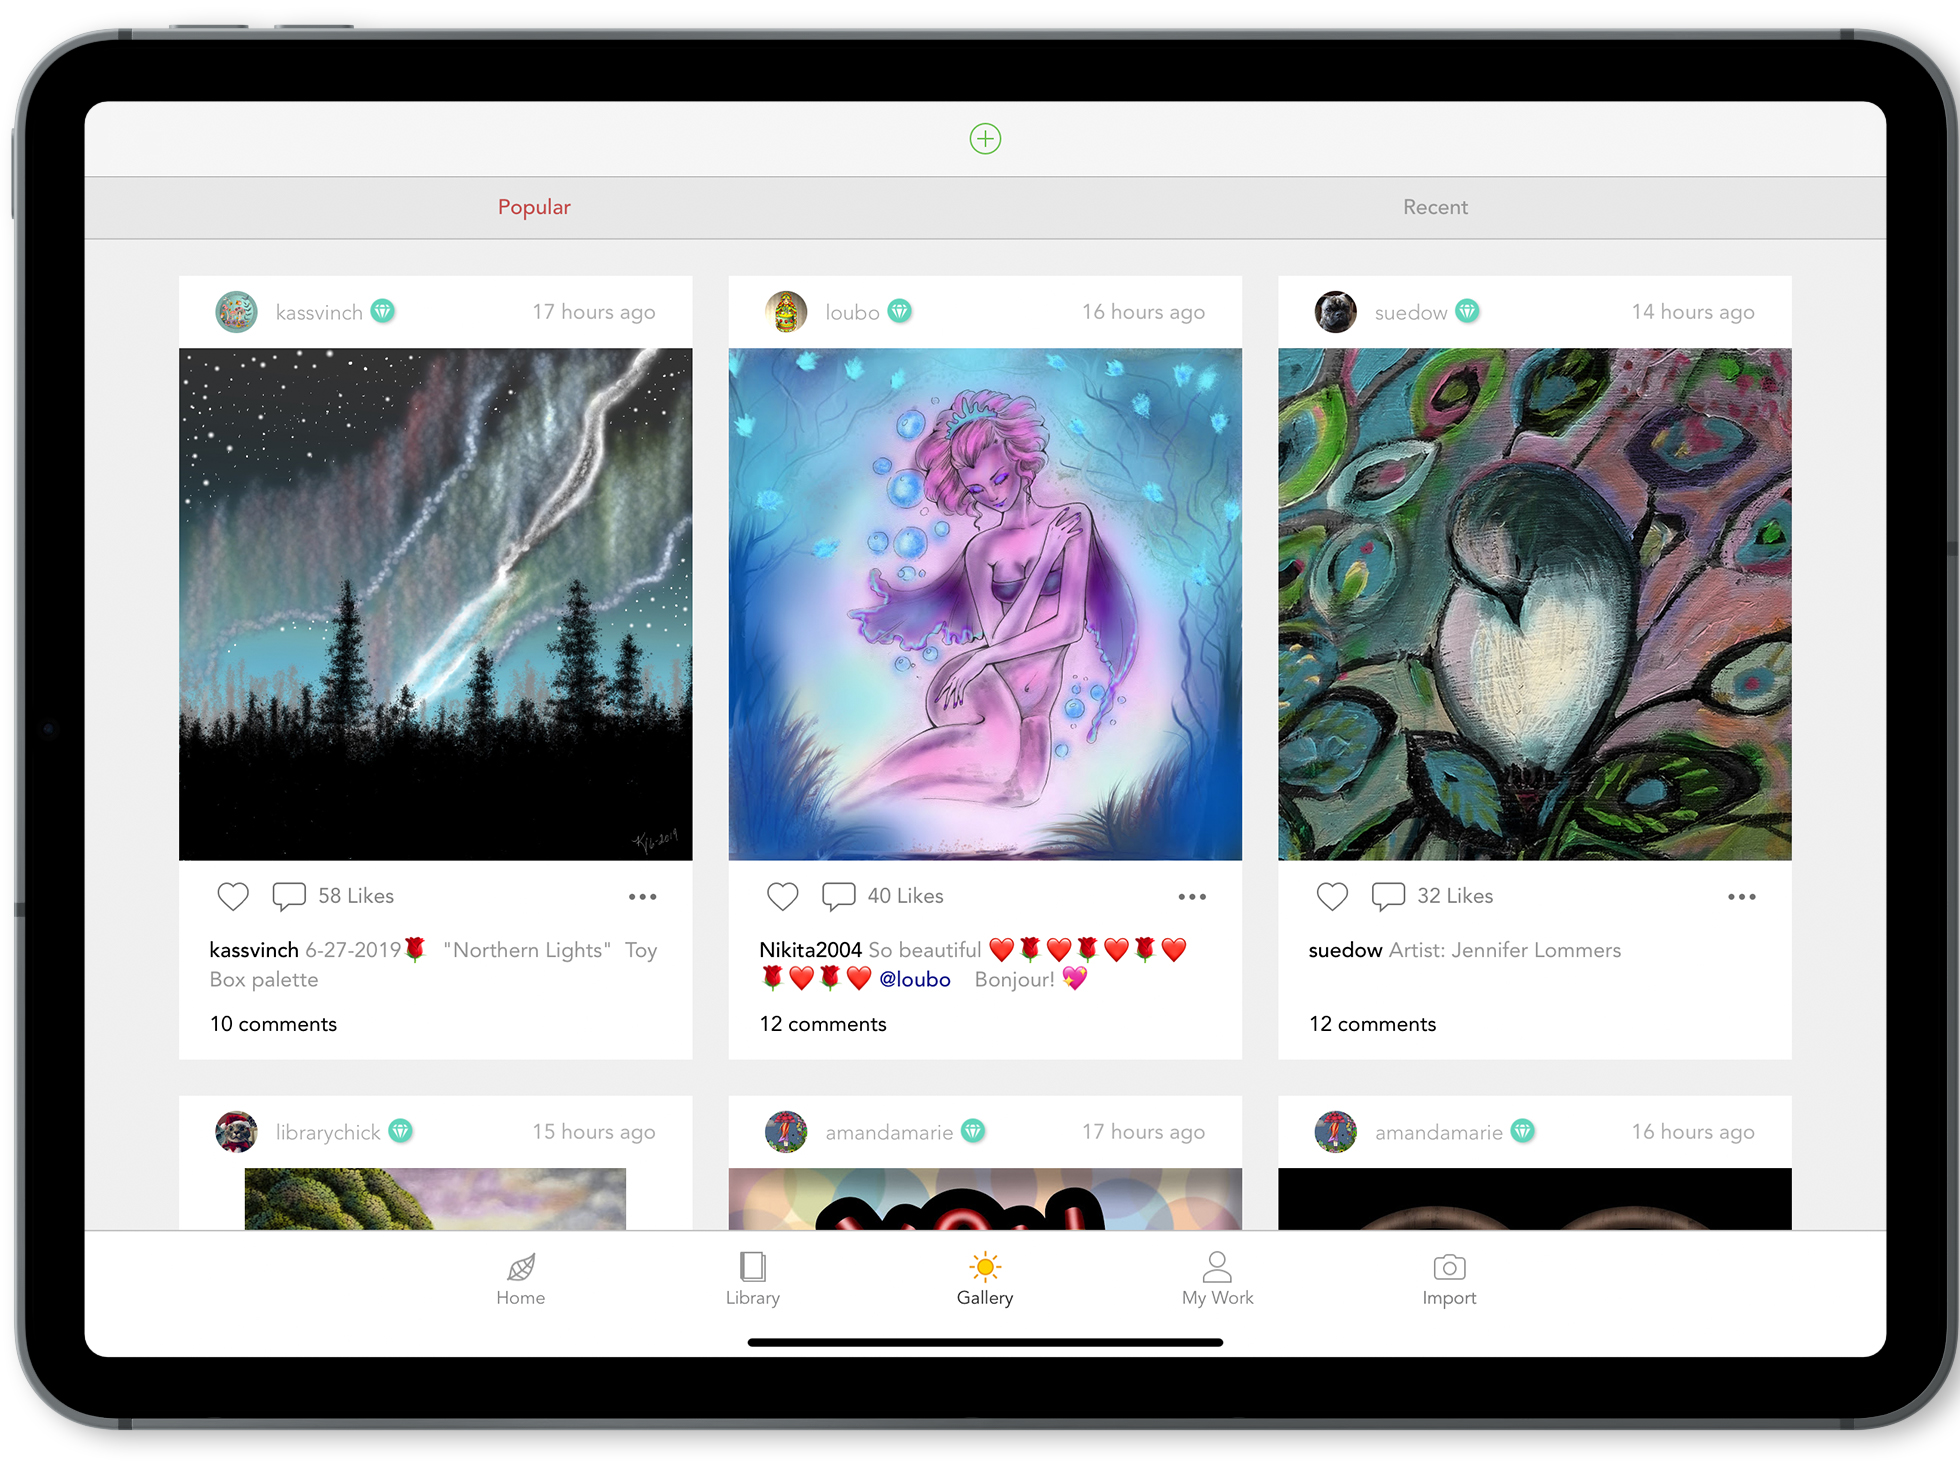 Gallery View - Once you have created your account will be taken to the Popular page of the Gallery. Here you will see the posts from other fellow colorsits that are highly regarded with-in the community.You can also access the Recents and the Following tabs from this screen.